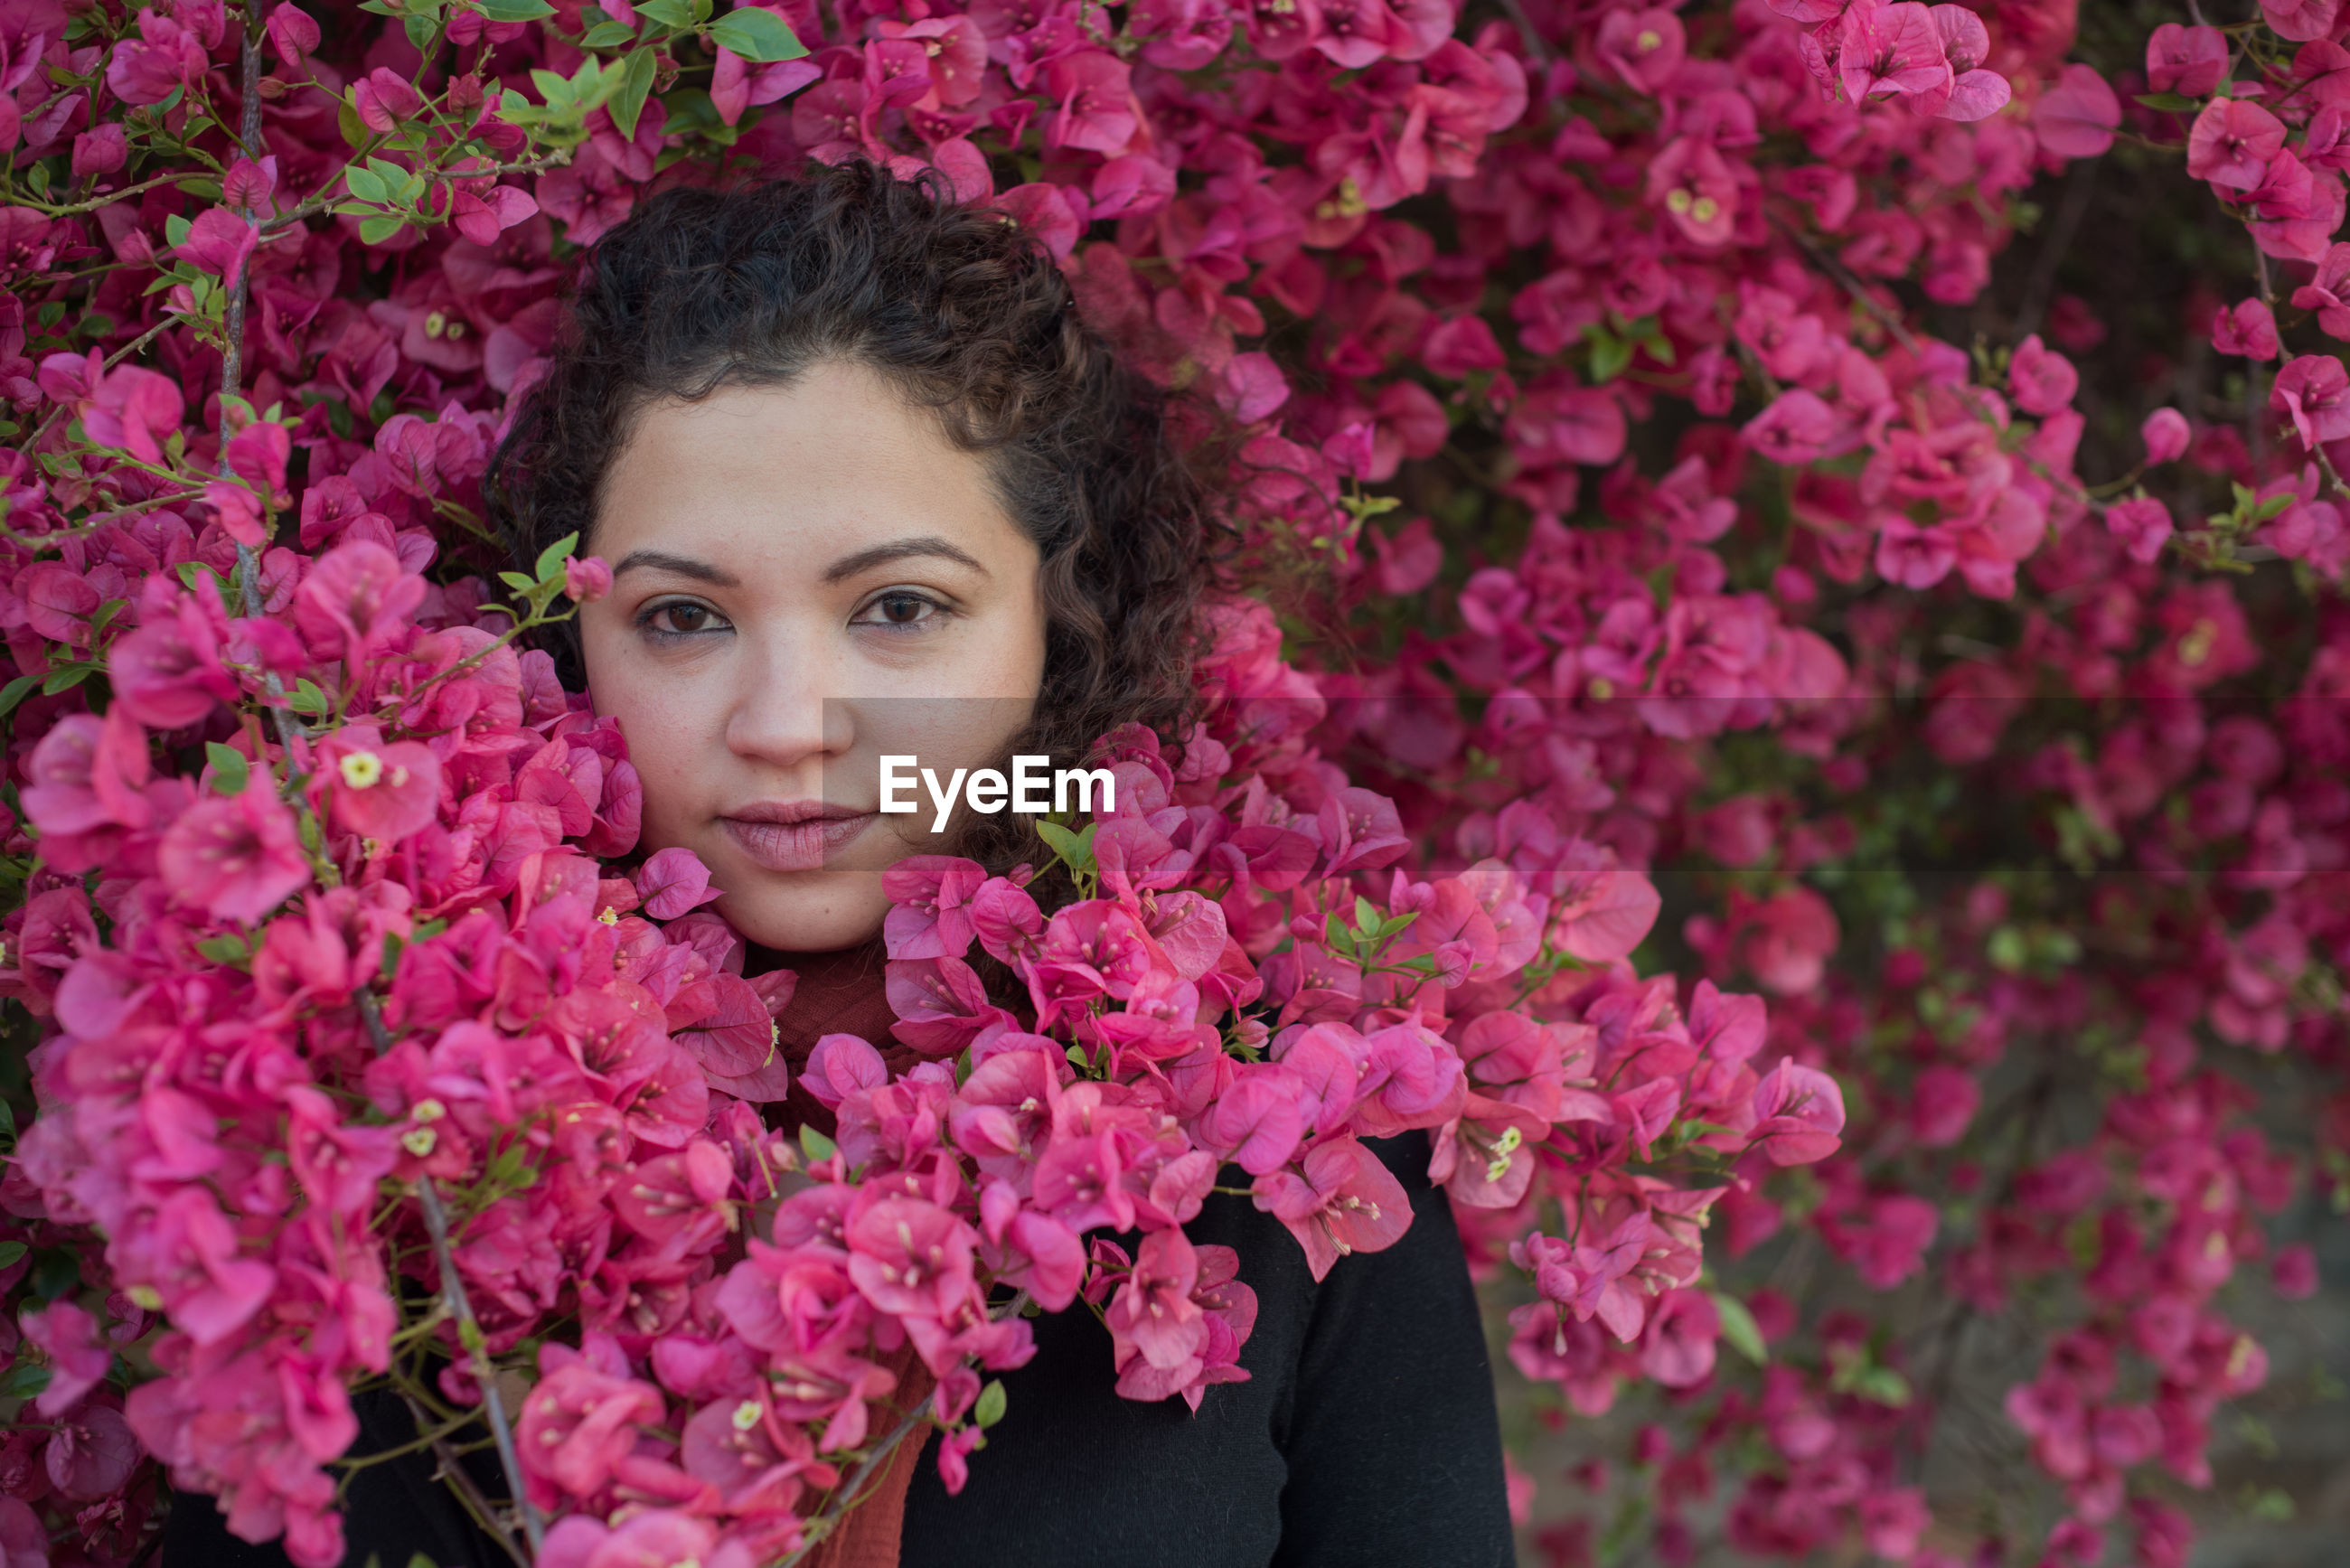 Portrait of young woman standing amidst pink flowers